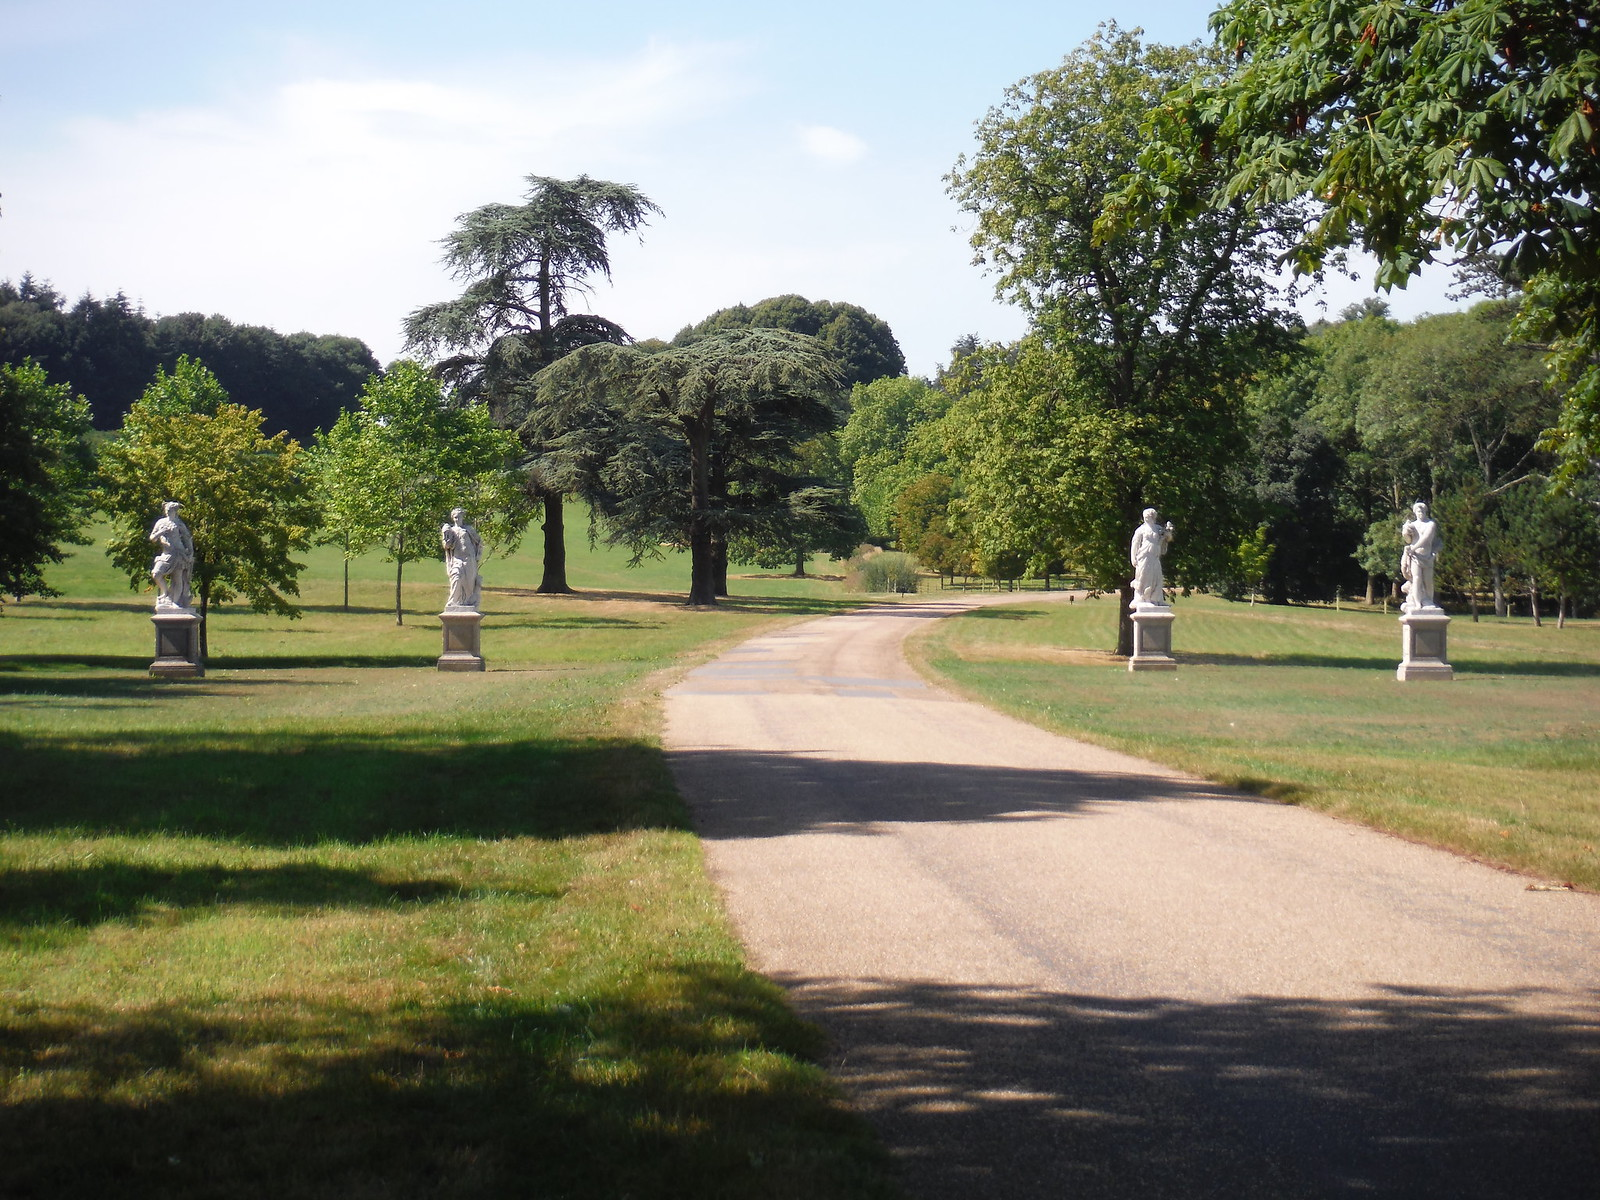 The Four Continents, Giacomo Cassetti, Waddesdon Estate Road SWC 192 Haddenham to Aylesbury (via Waddesdon)